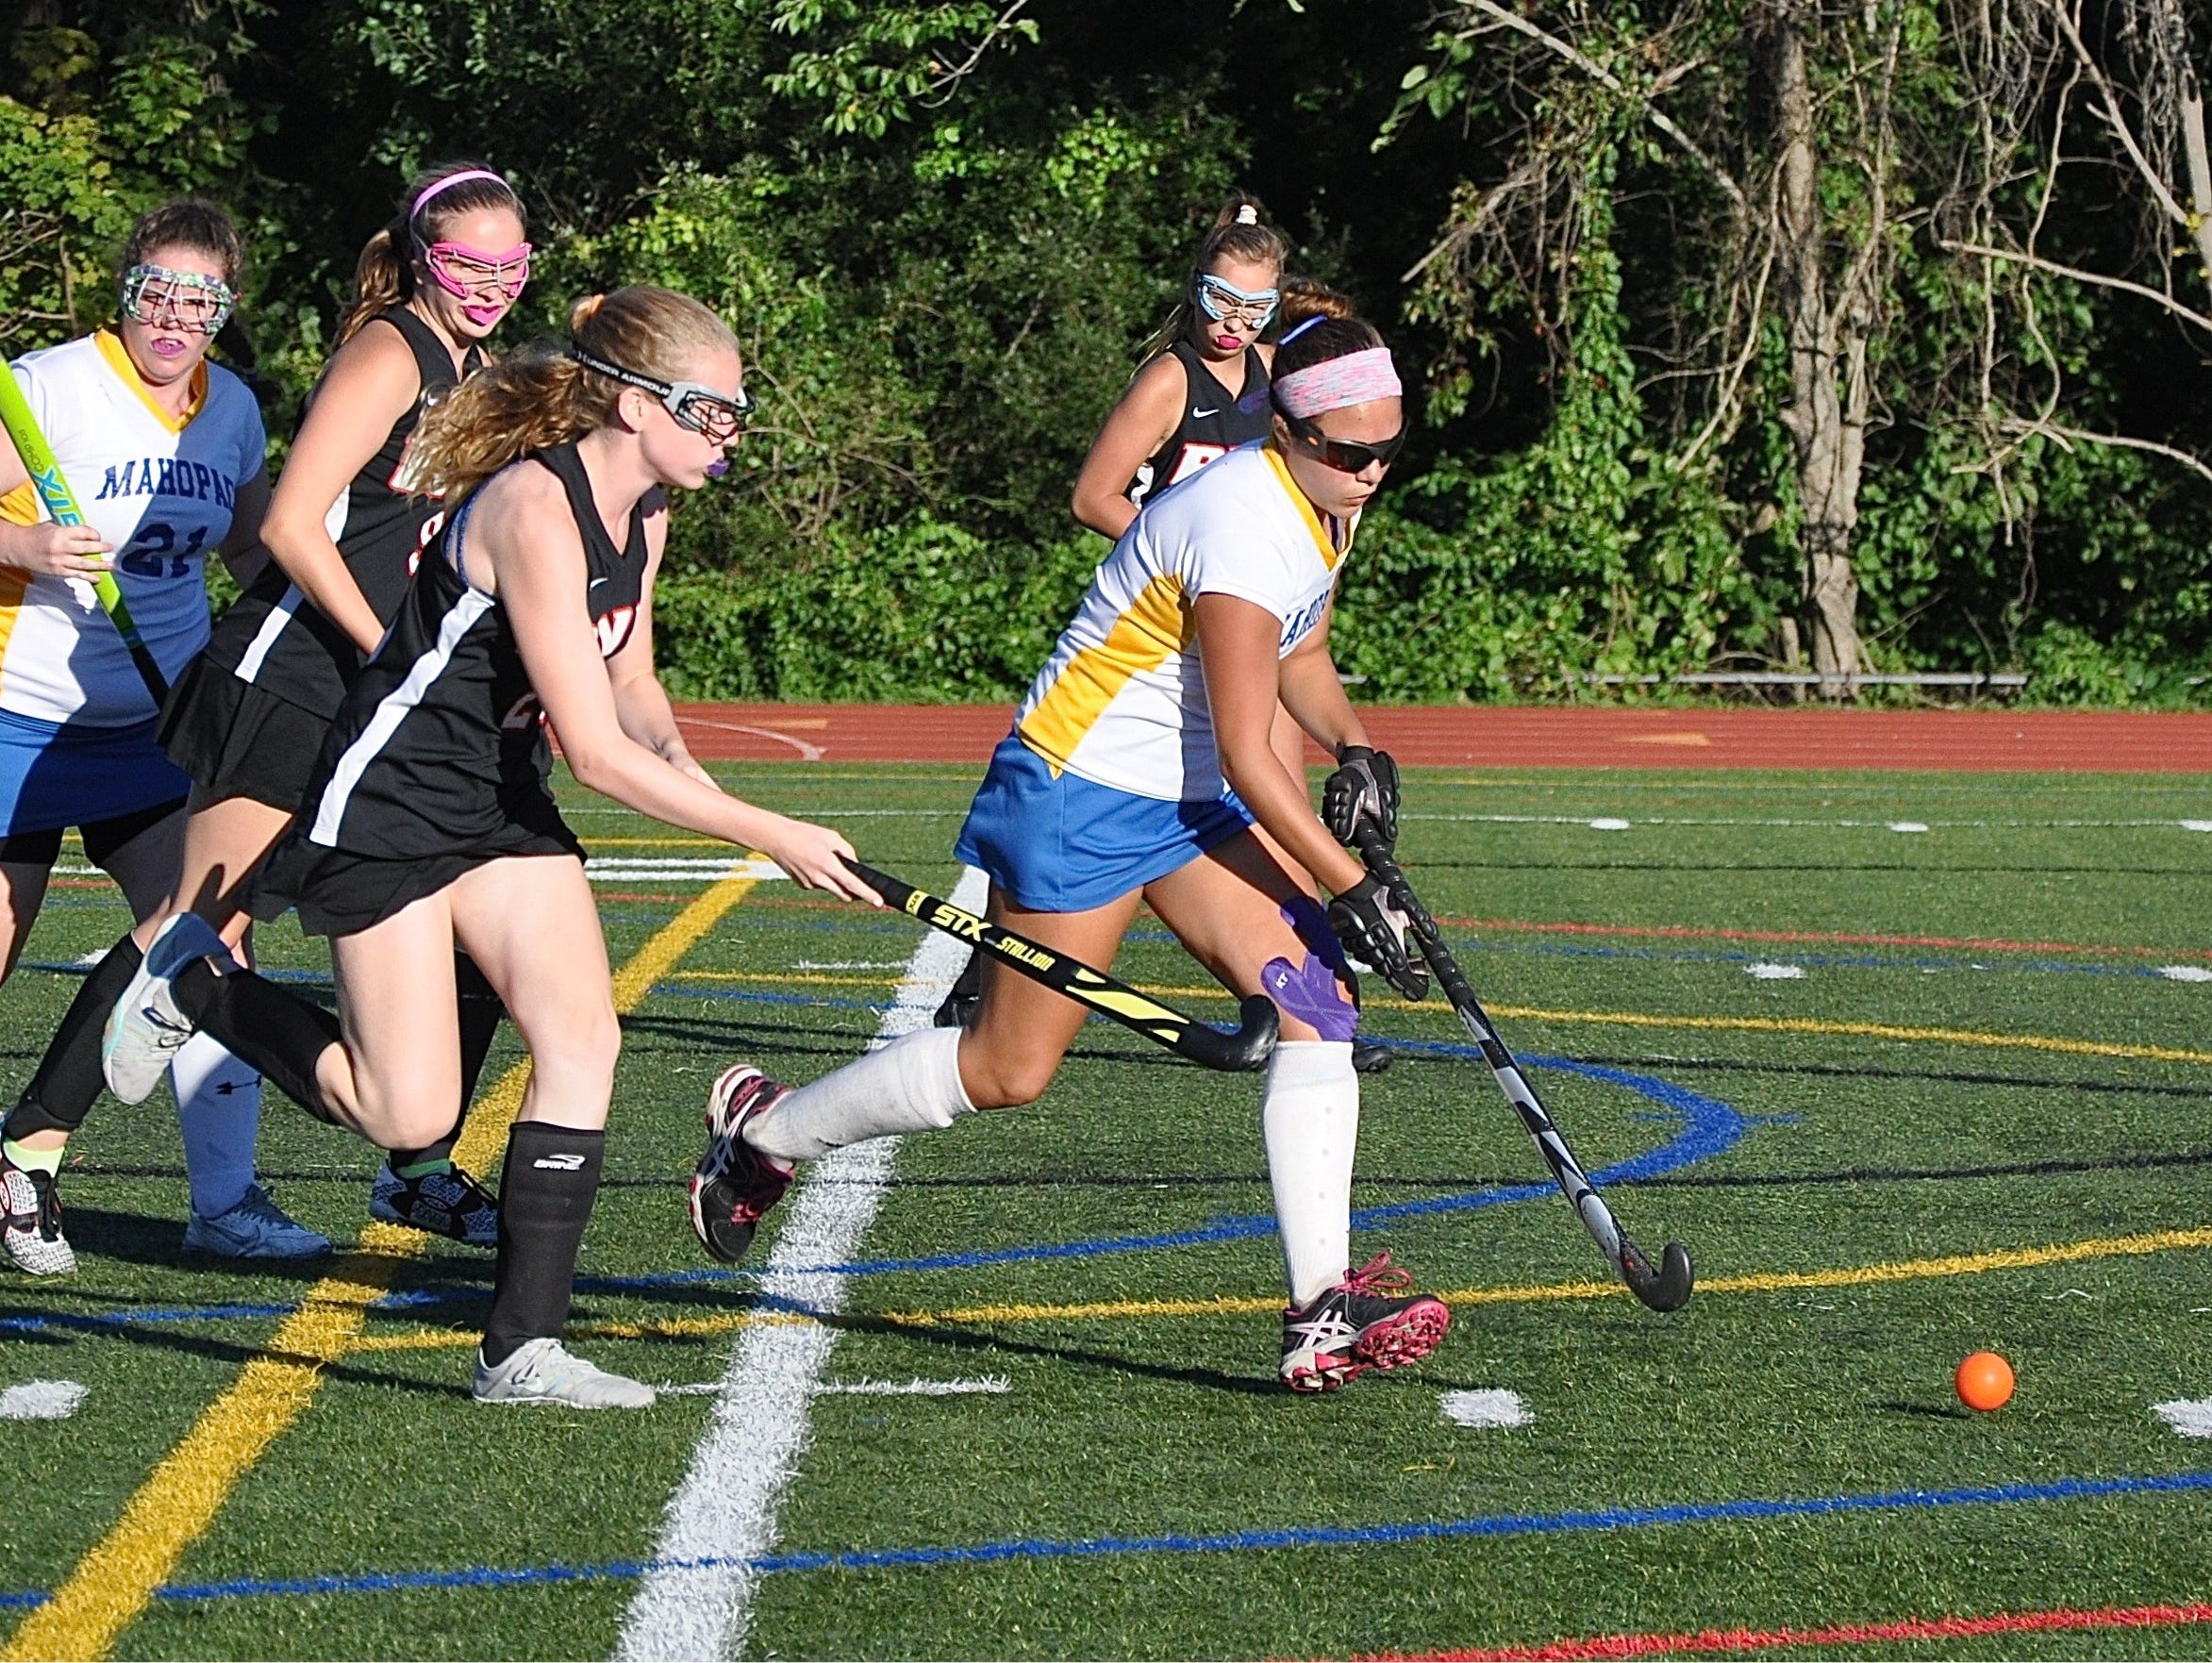 Dominique Milian breaks the ball out of the Mahopac defensive zone, chased by Rye's Catherine Egan. Photo from Sep 12, 2016.